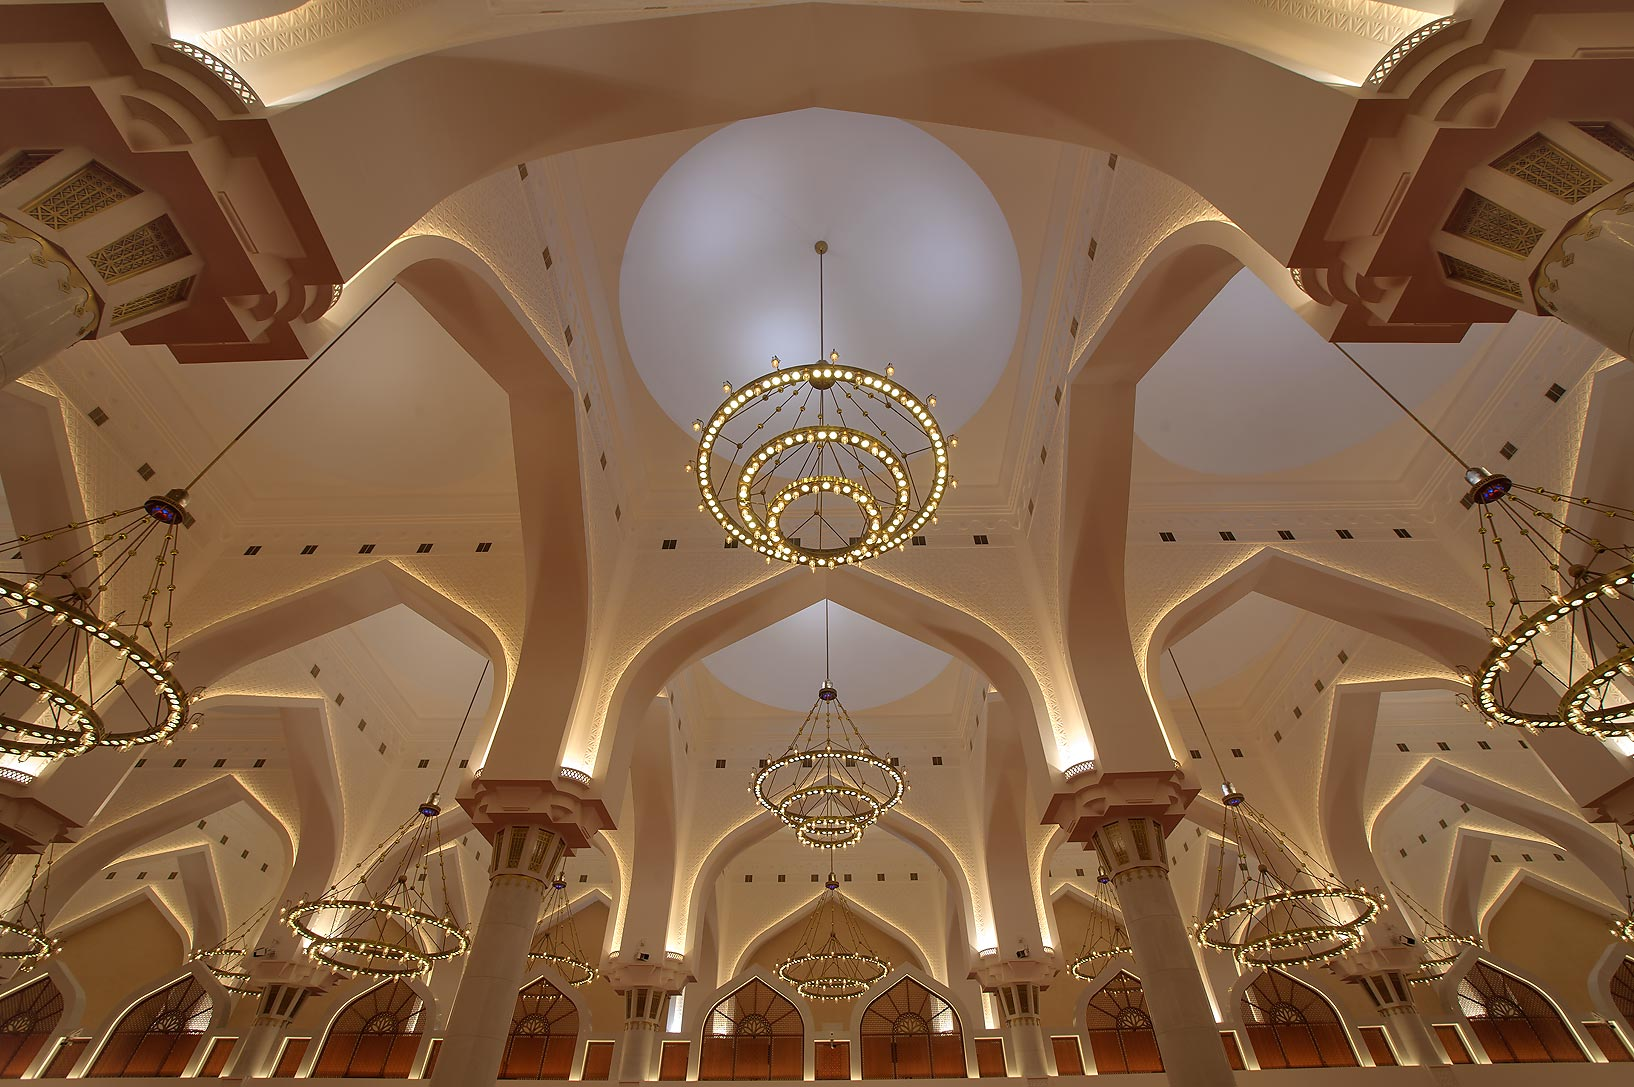 Vaults and chandelier of State Mosque (Sheikh...Ibn Abdul Wahhab Mosque). Doha, Qatar